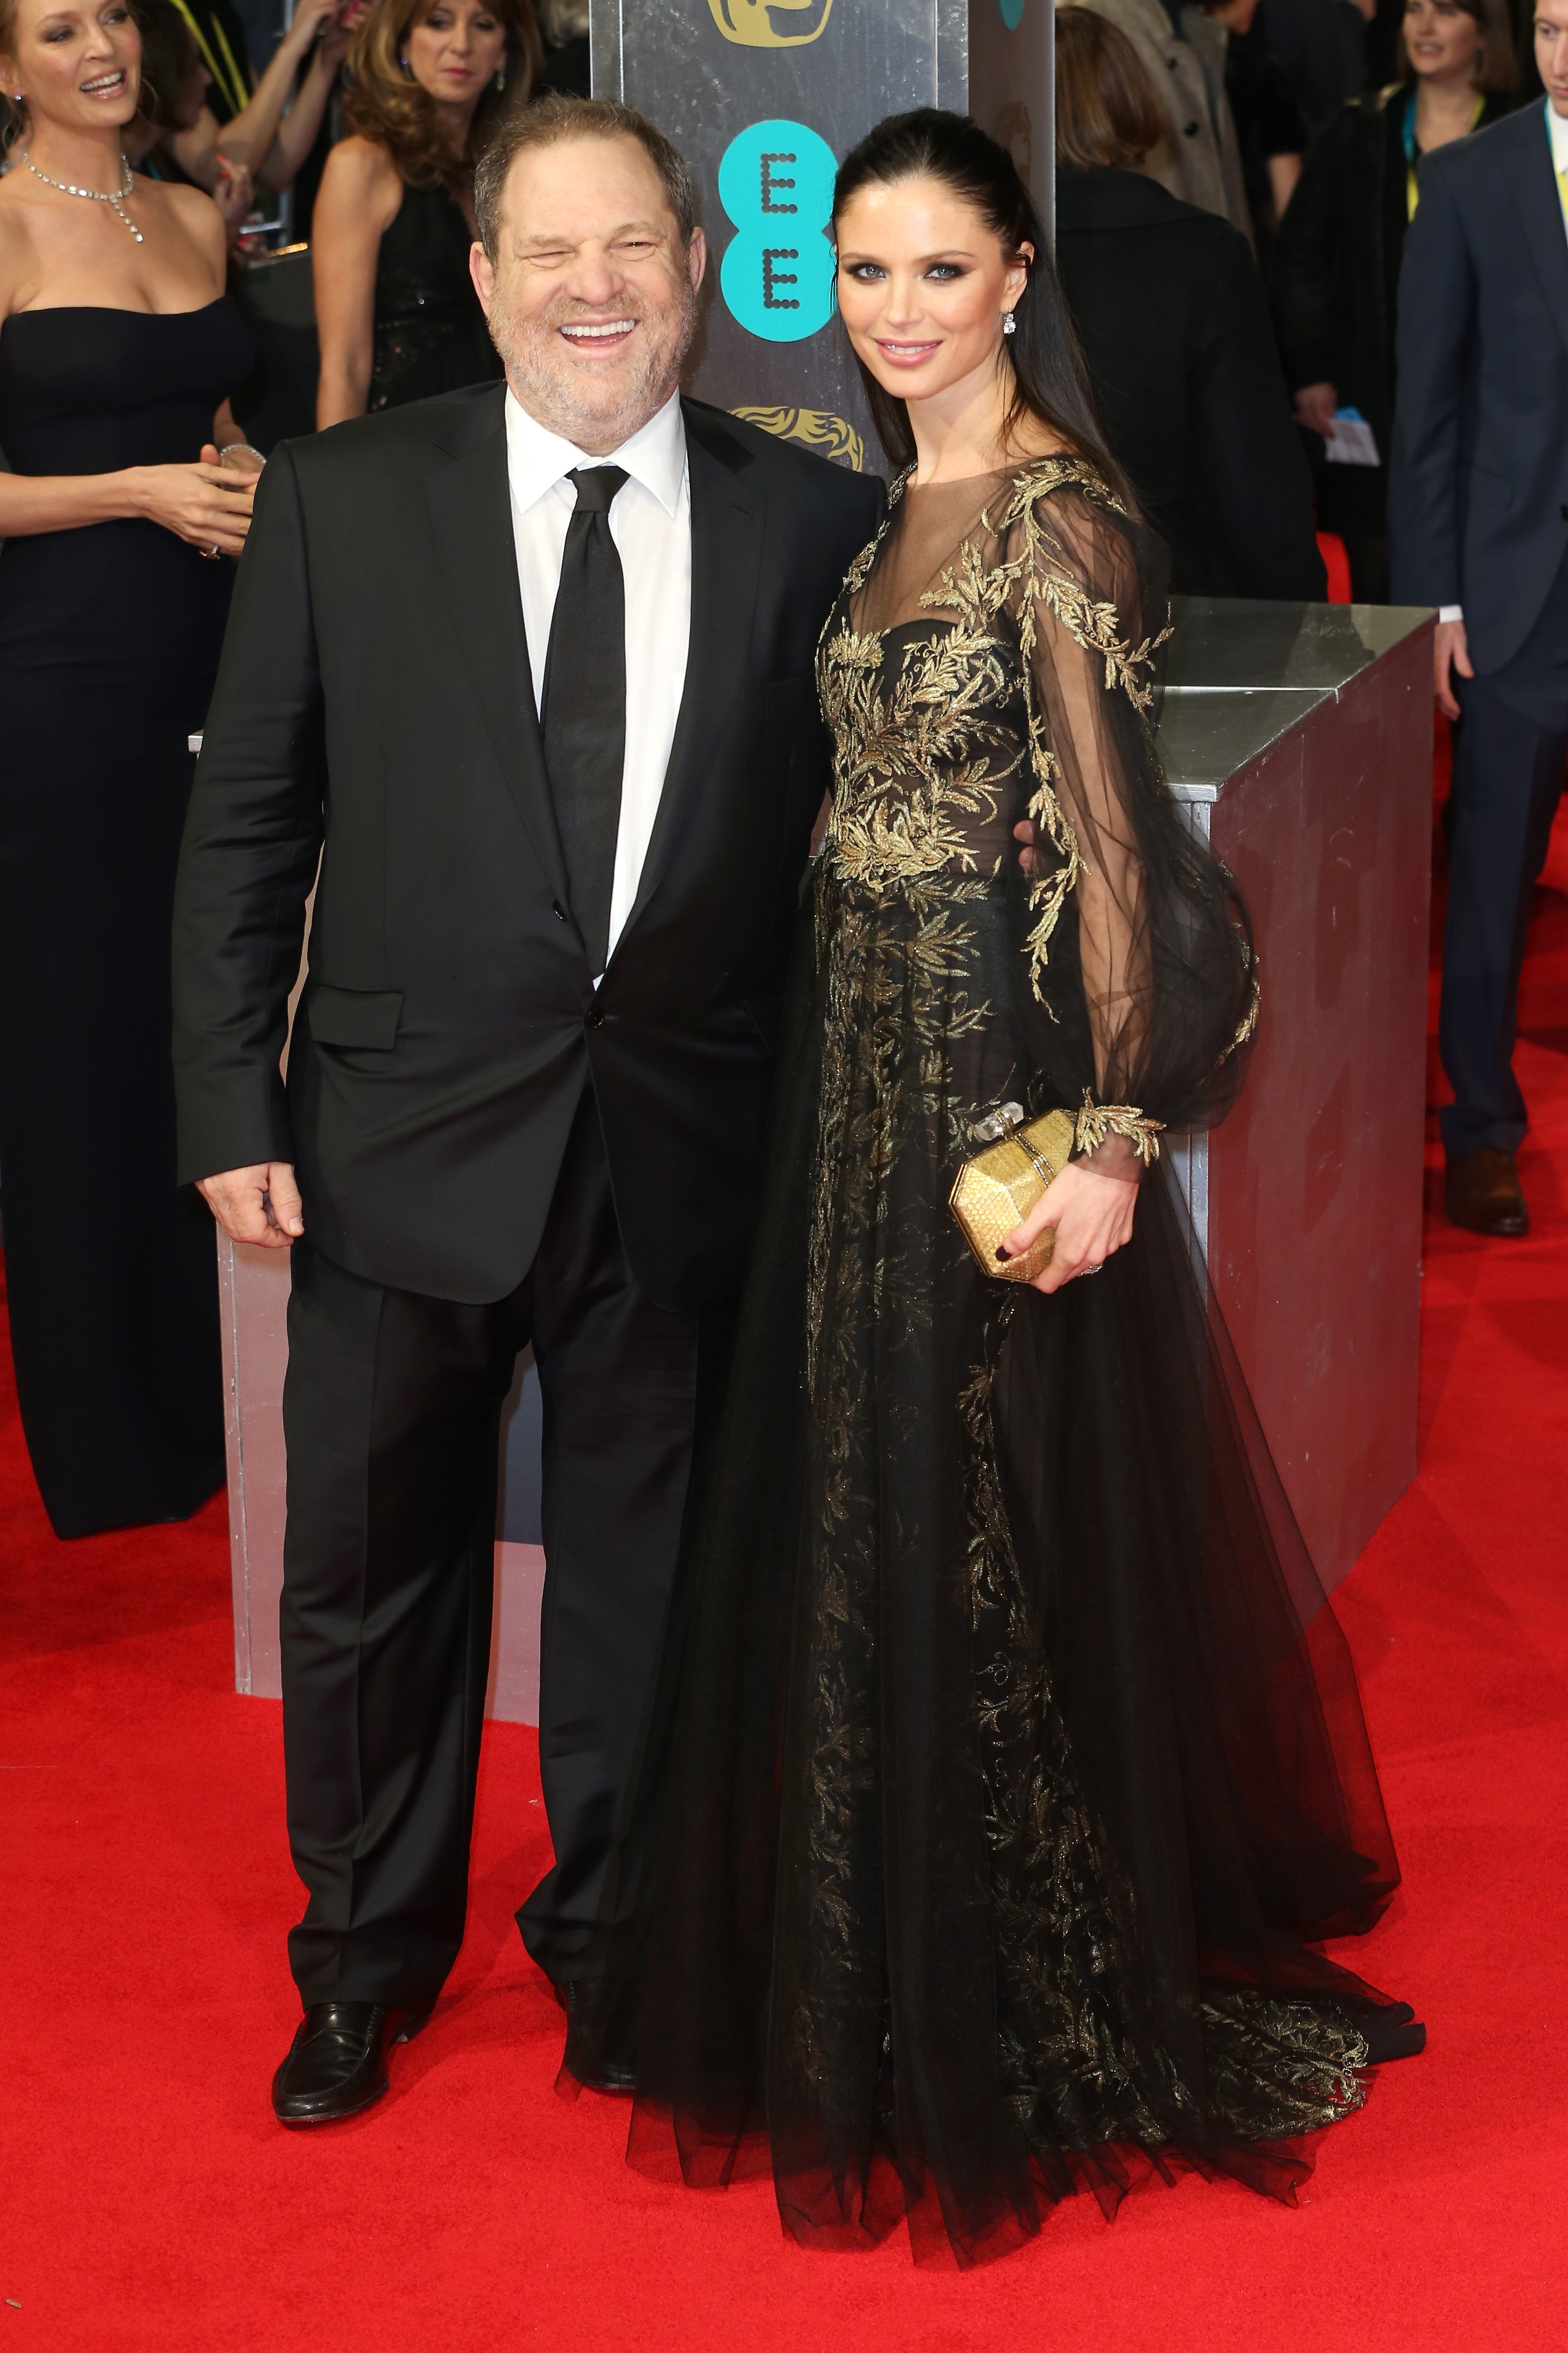 Across the pond: Producer Harvey Weinstein was in London Sunday with Georgina Chapman to attend the EE British Academy Film Awards 2014 at the Royal Opera House.